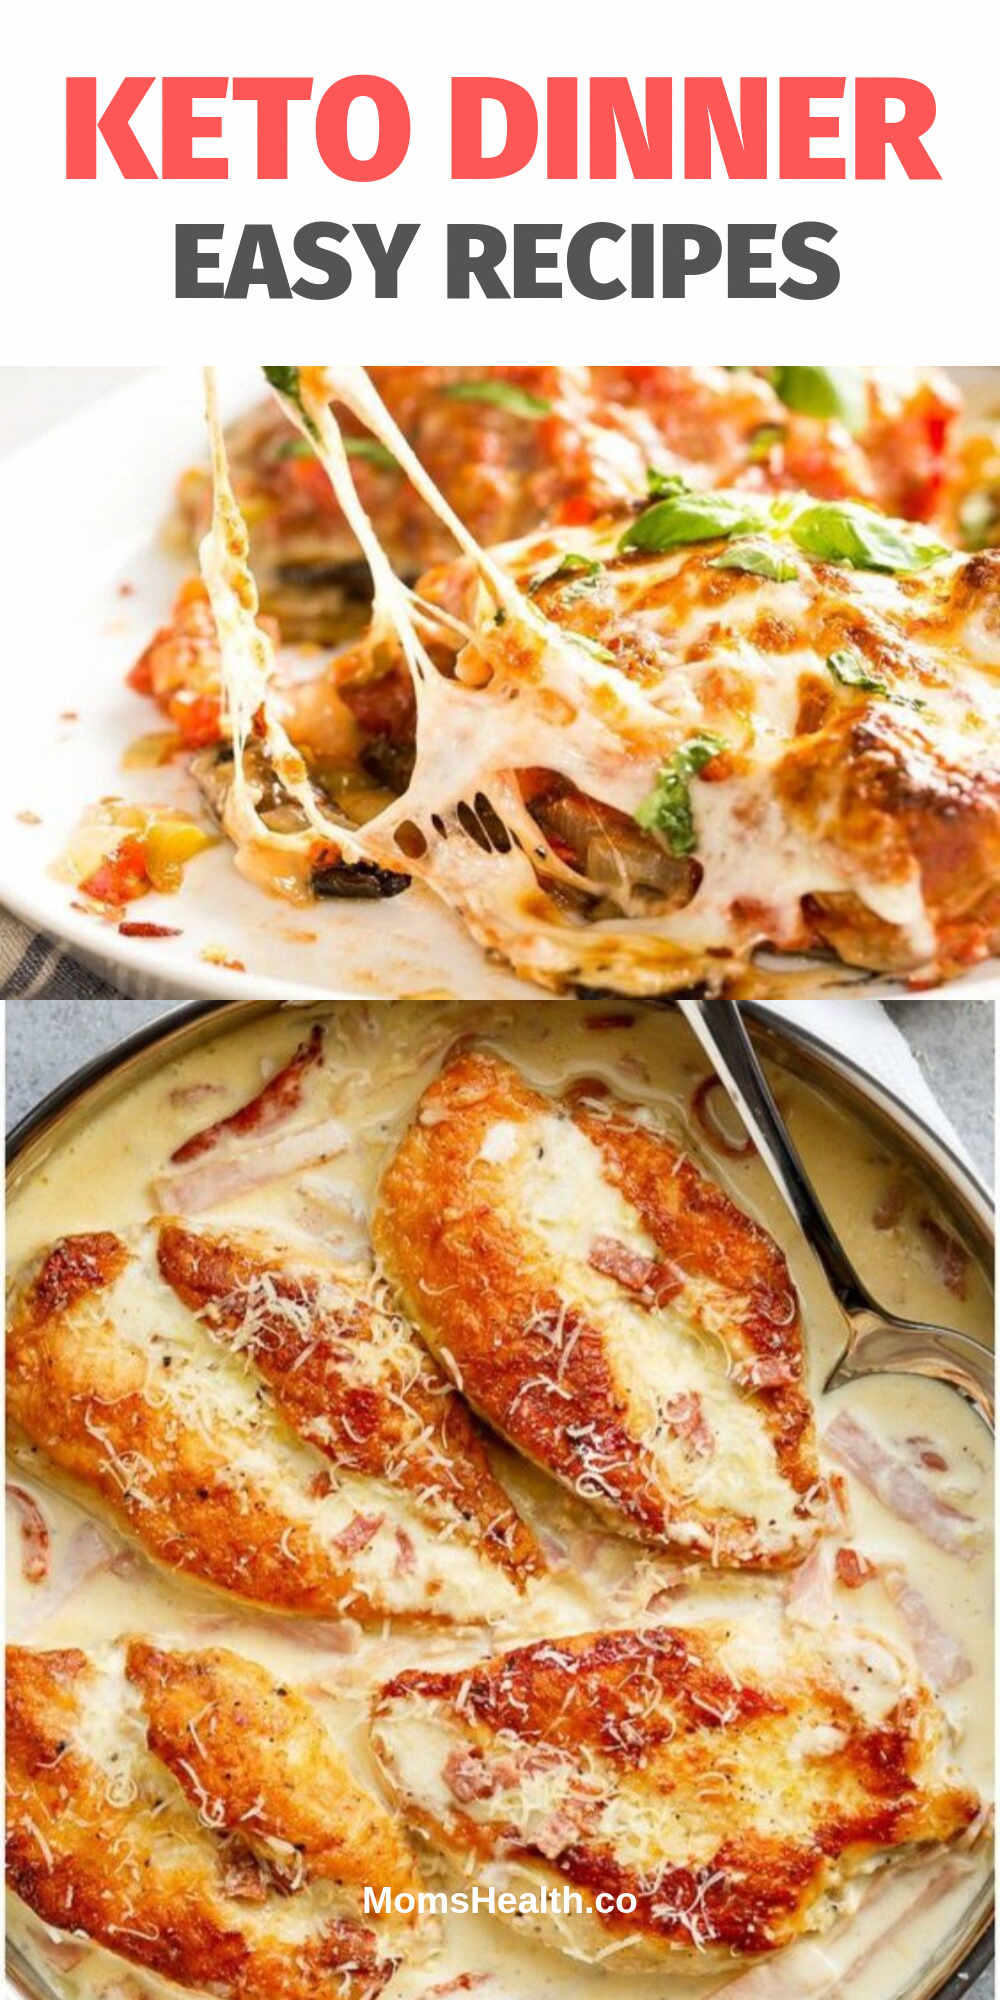 Keto dinner recipes and you will never feel like you are on a diet! Ketogenic diet only seems to be difficult and strict. In fact, there are so many options of healthy keto recipes that you can open an entire new Keto world, just follow new posts on MomsHealth.co! #keto #recipe #dinner #lowcarb #ketogenic #recipes #food #healthyfood #lchf #TheBestKetogenicDietForWeightLoss #strictketo